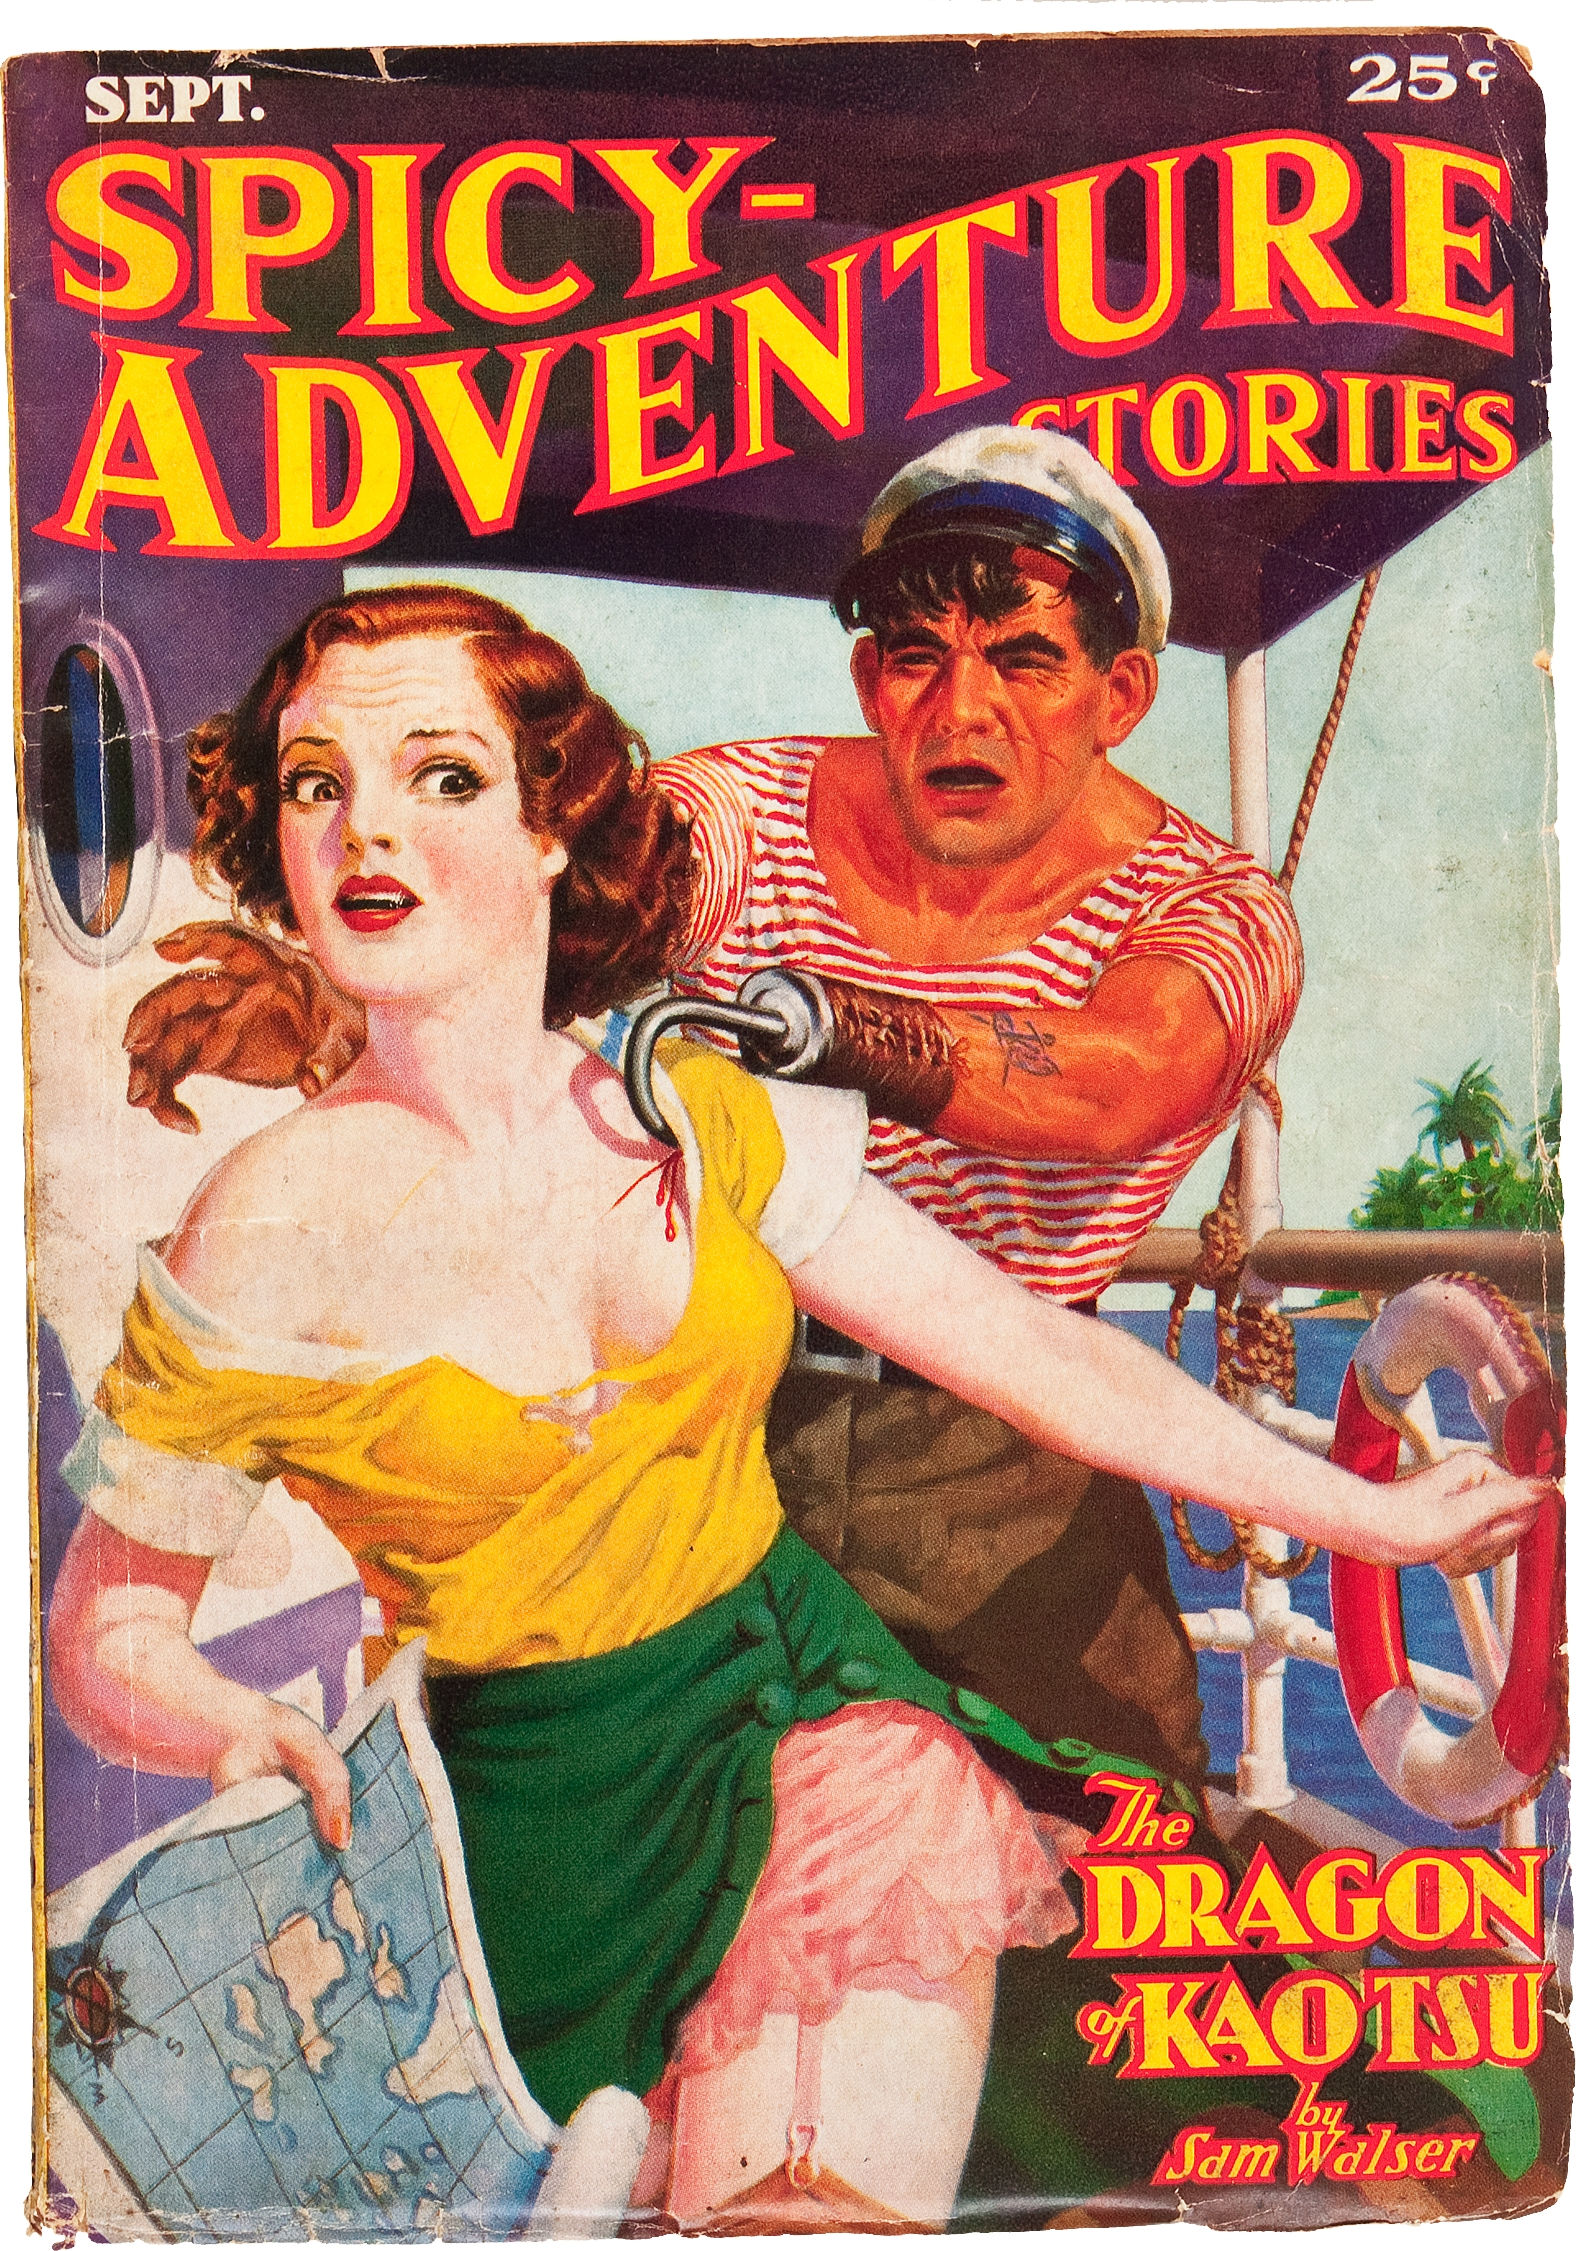 Spicy Adventure Stories September 1936